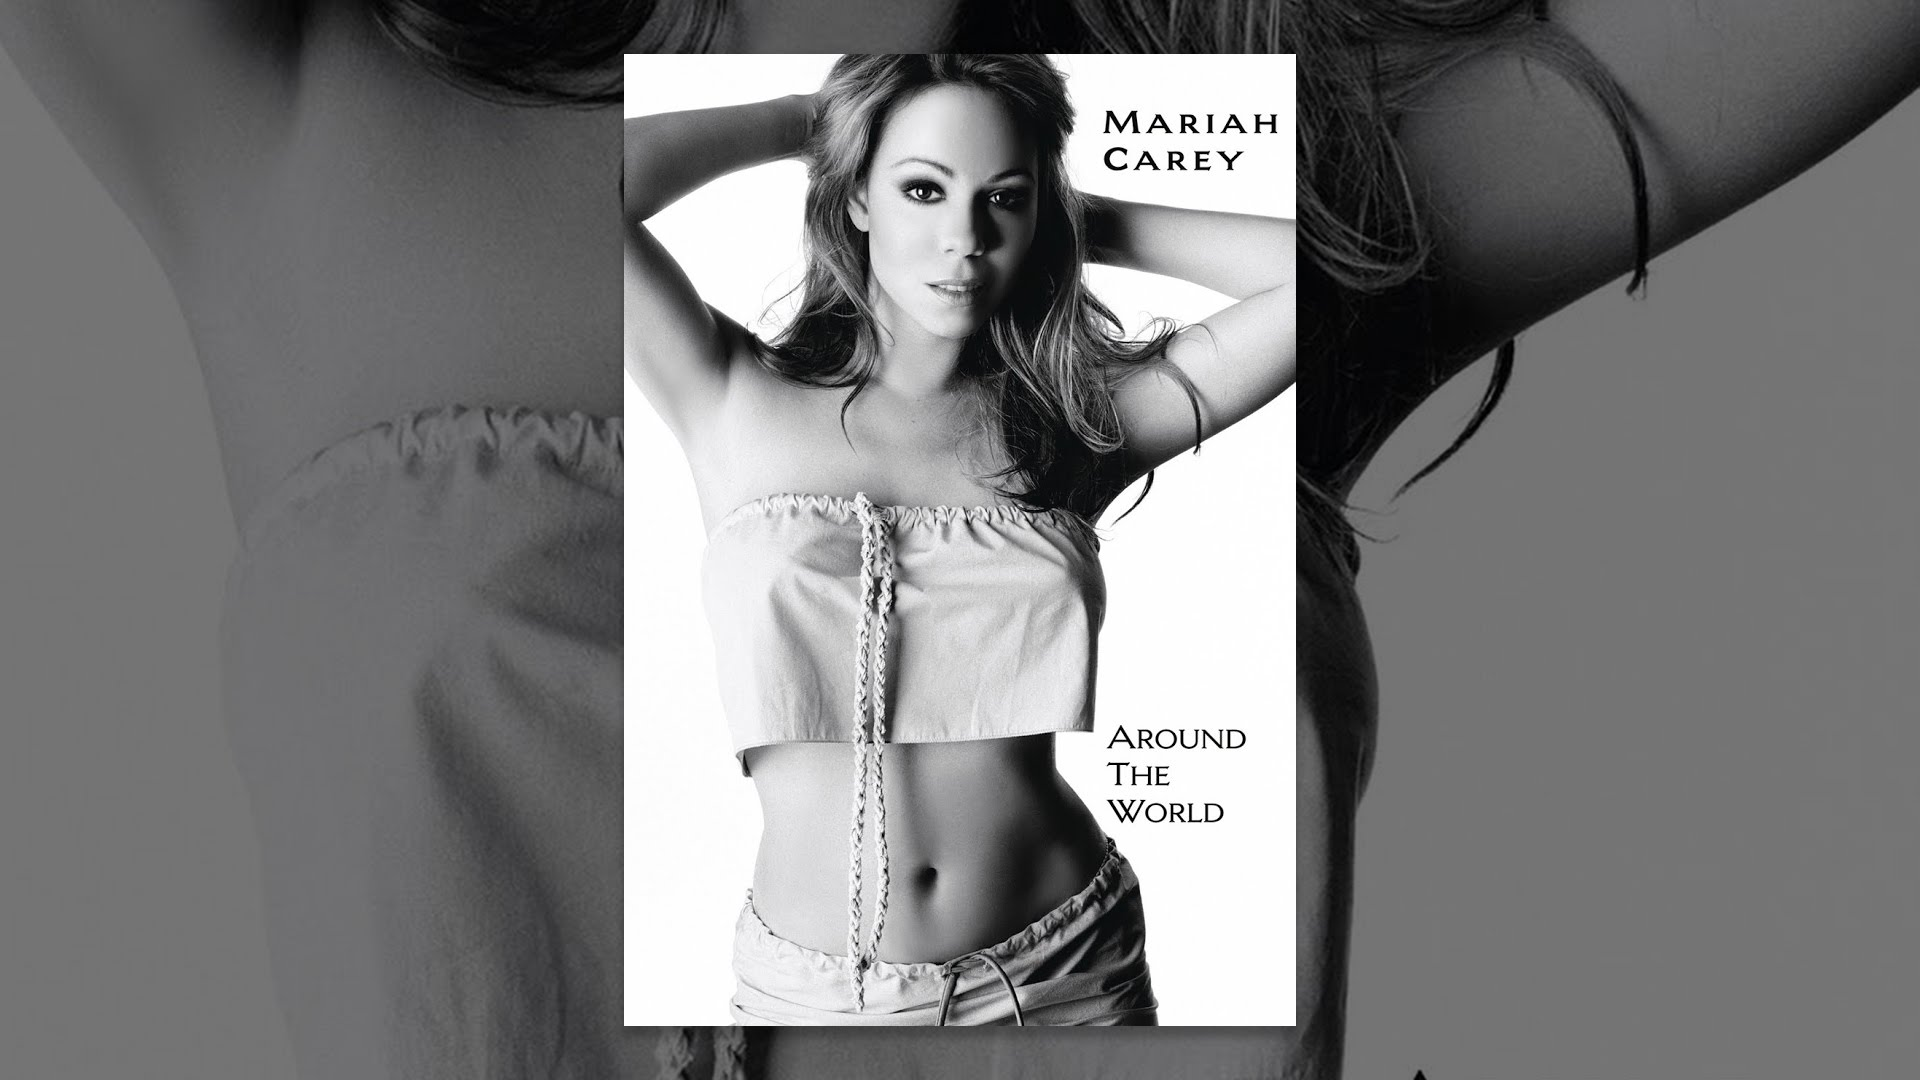 Mariah Carey: Around the World